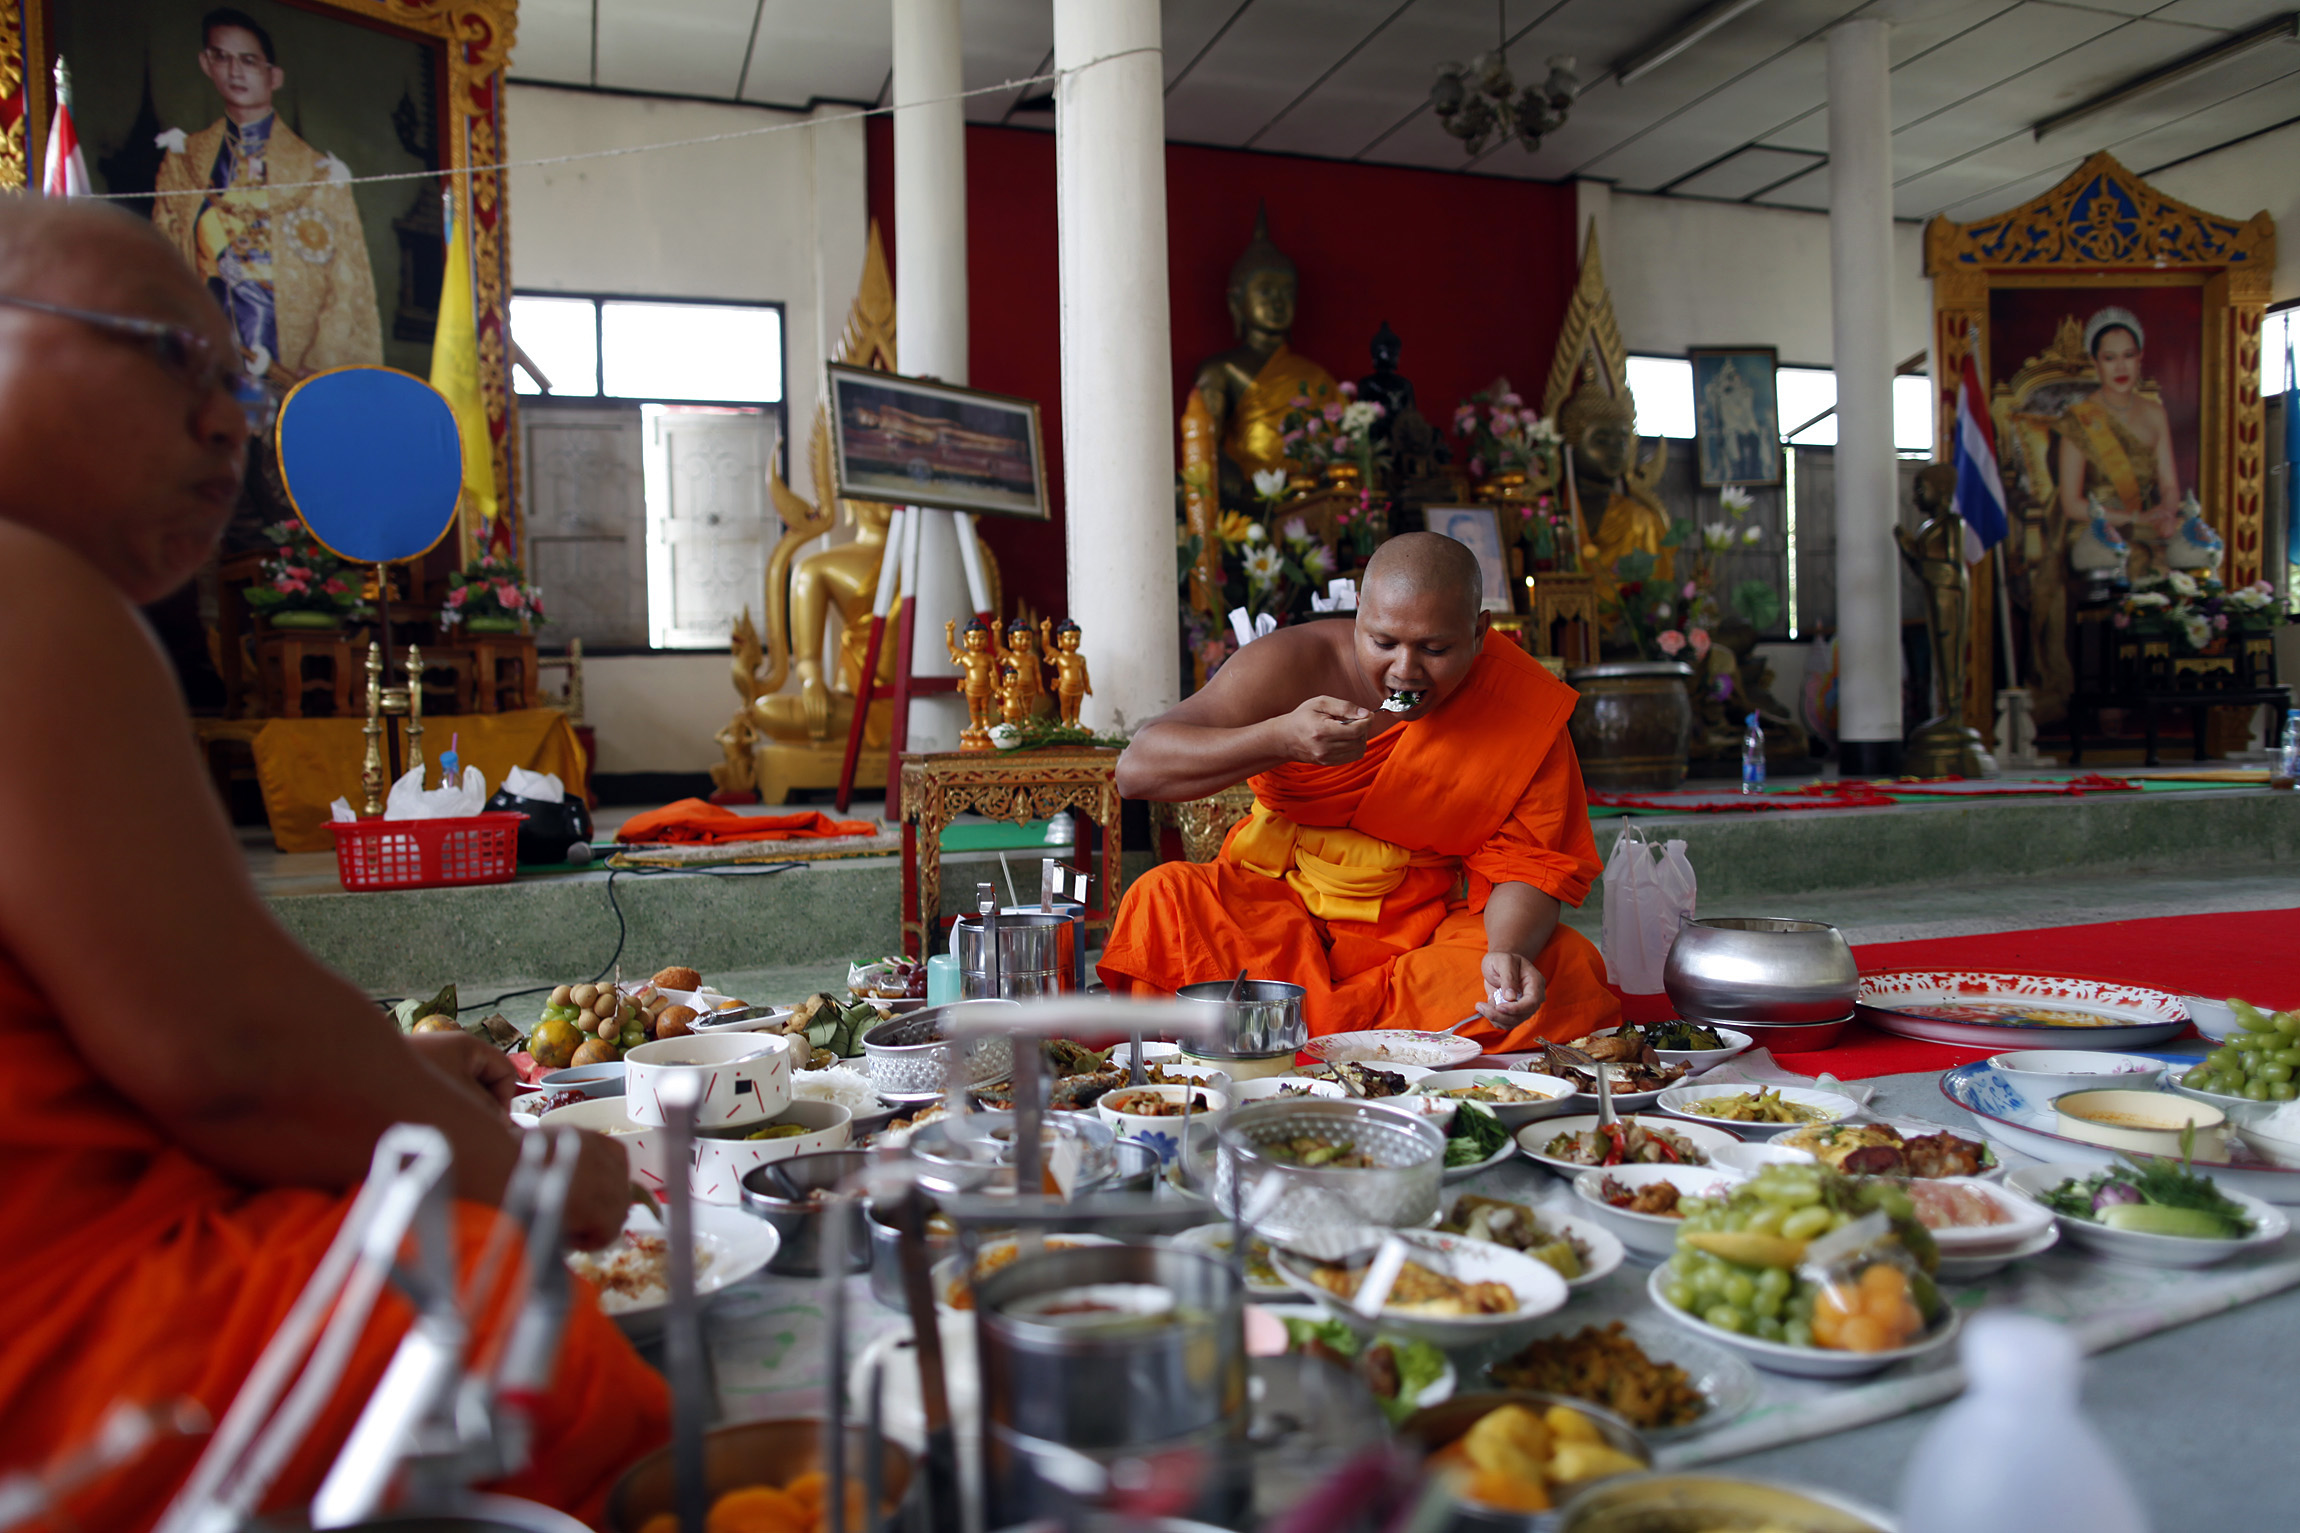 Buddhist monks are offered food during a ceremony at their temple where a Thai army unit is also based in the troubled Yala province in southern Thailand on March 31, 2010